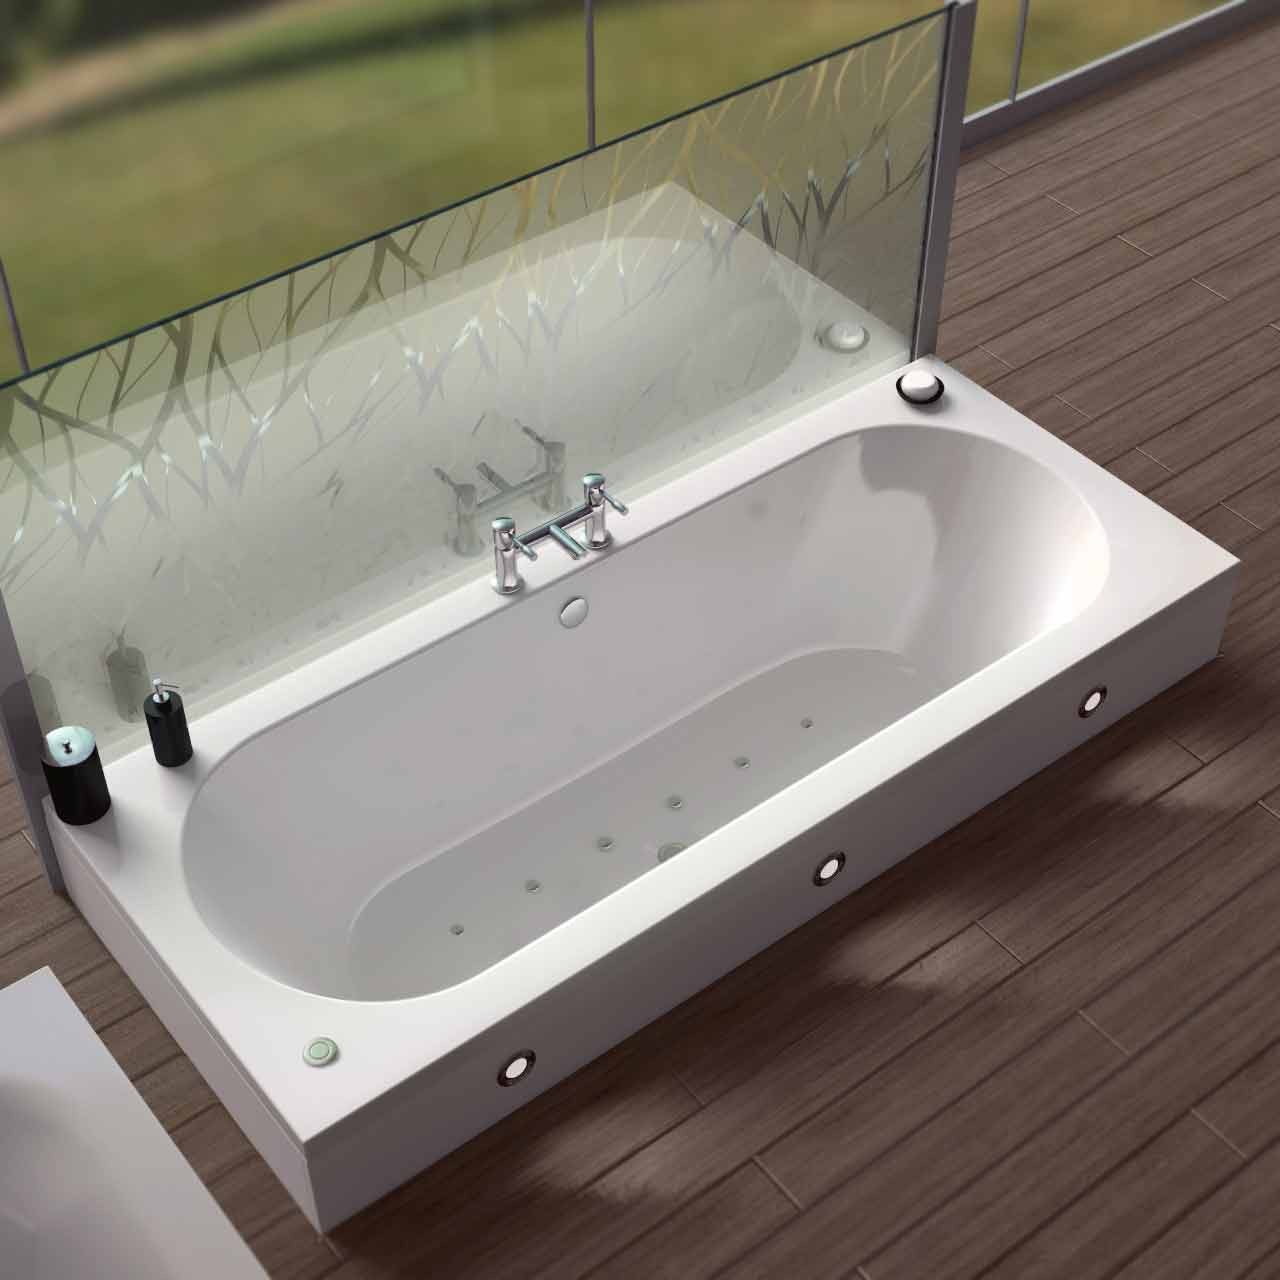 Metropole Centre Tap 12 Jet Easifit Spa Whirlpool Bath 1800x800